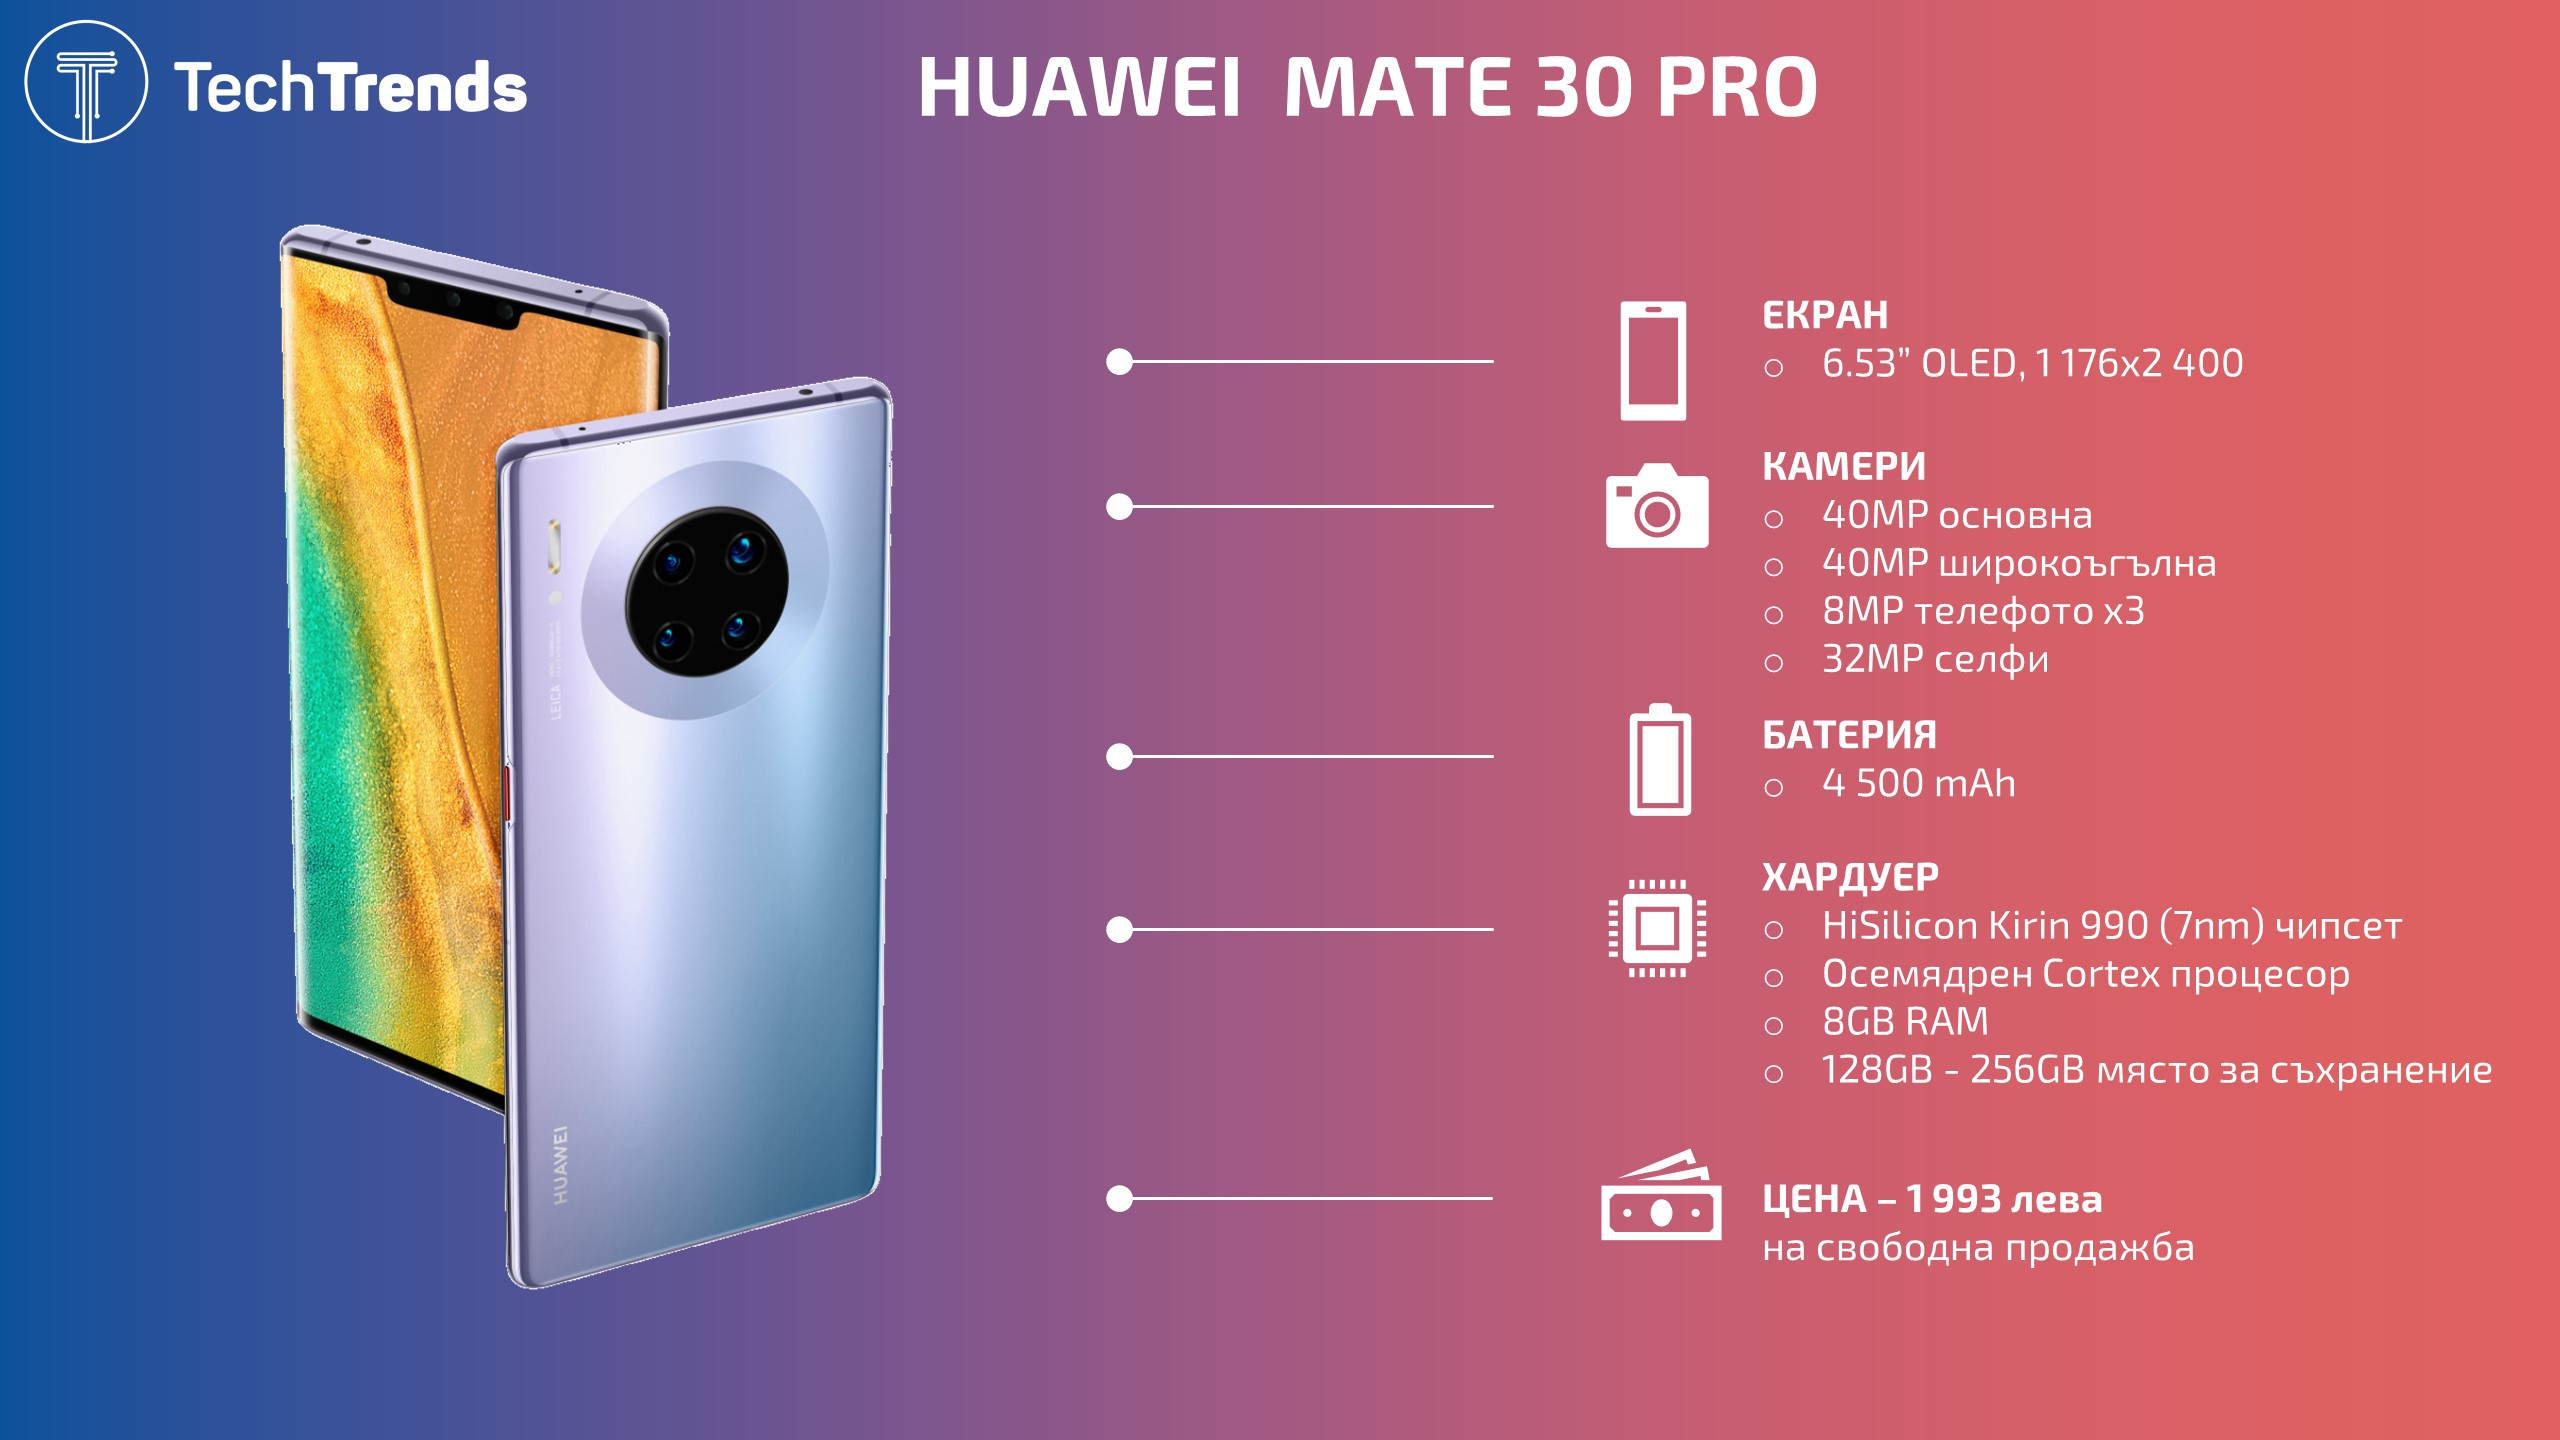 Huawei Mate 30 Pro Infographic